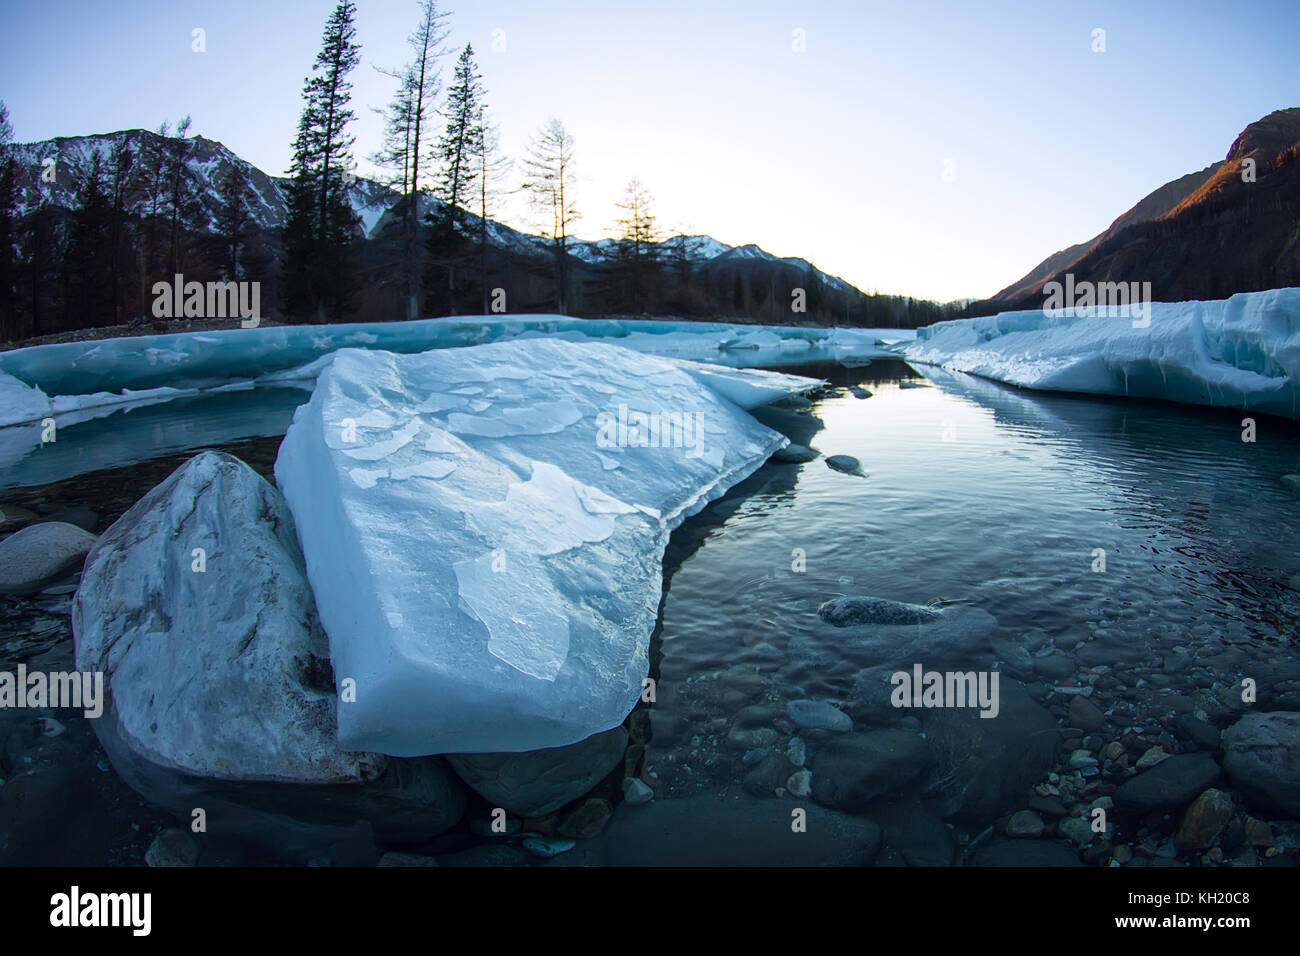 glacier ice melts in the spring on the river in the mountains. - Stock Image